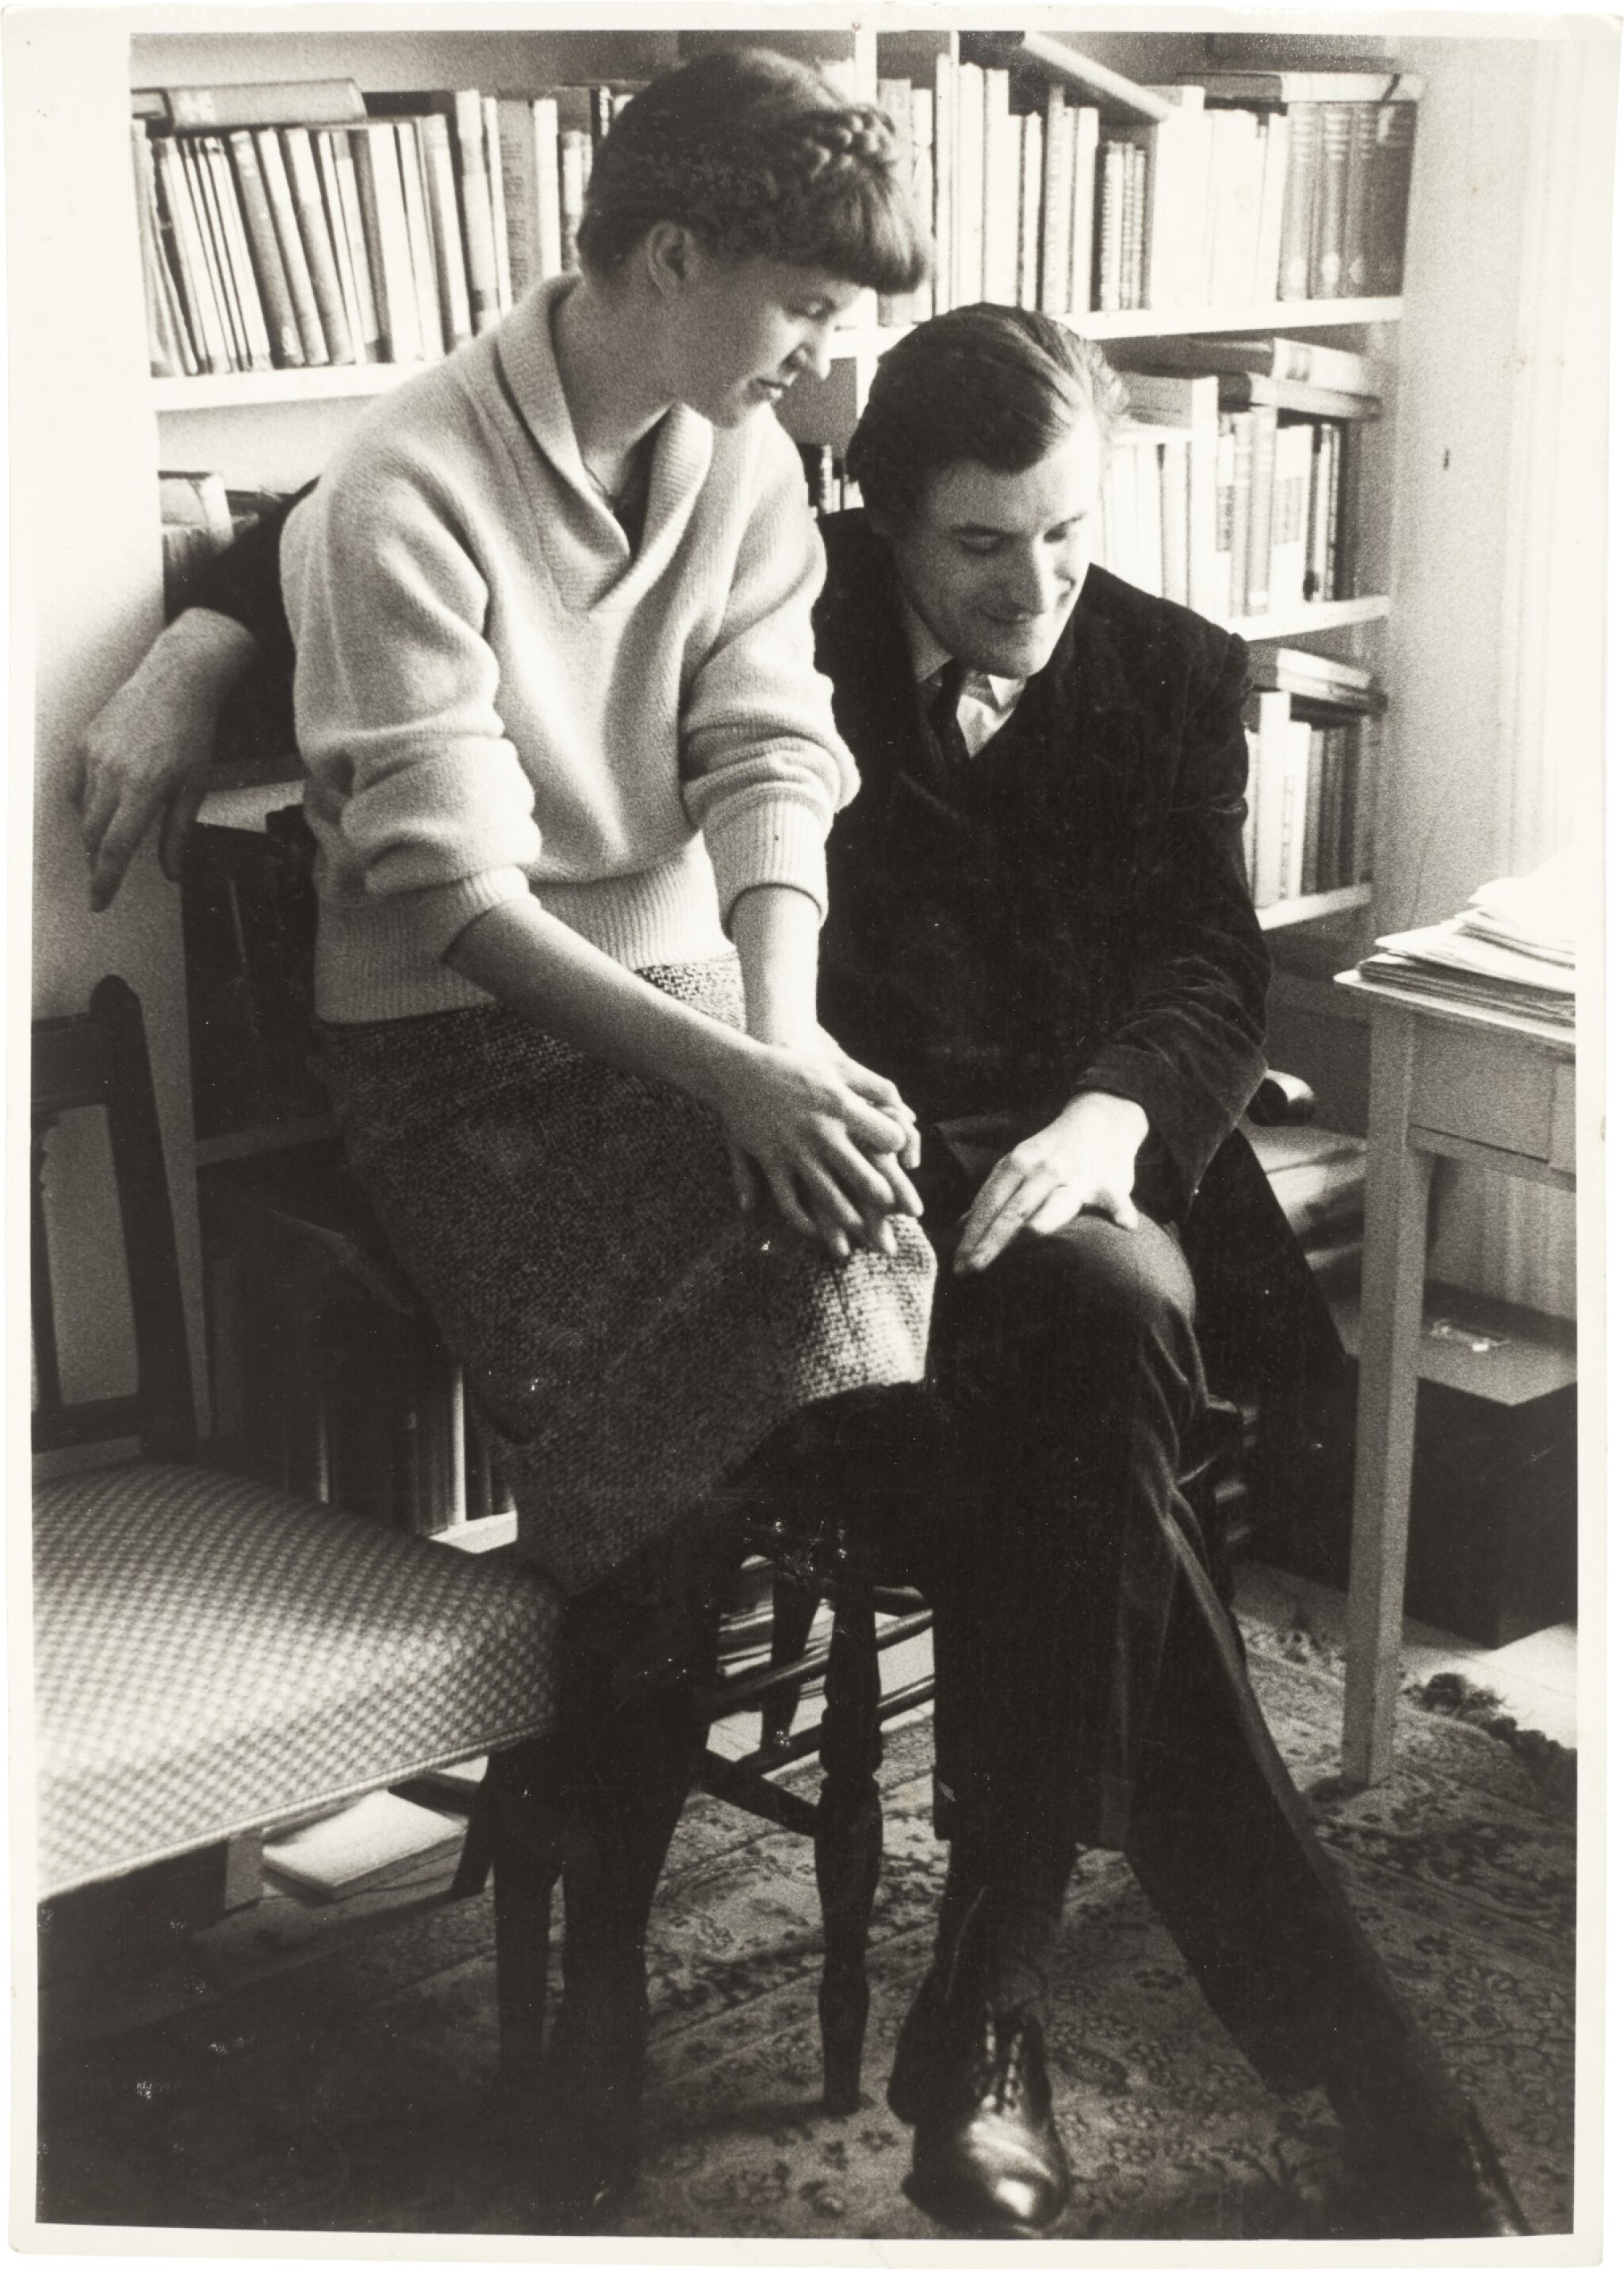 View full screen - View 1 of Lot 43. Sylvia Plath and Ted Hughes | photographic portrait by David Bailey, inscribed by Plath, 1961, and another press photo.